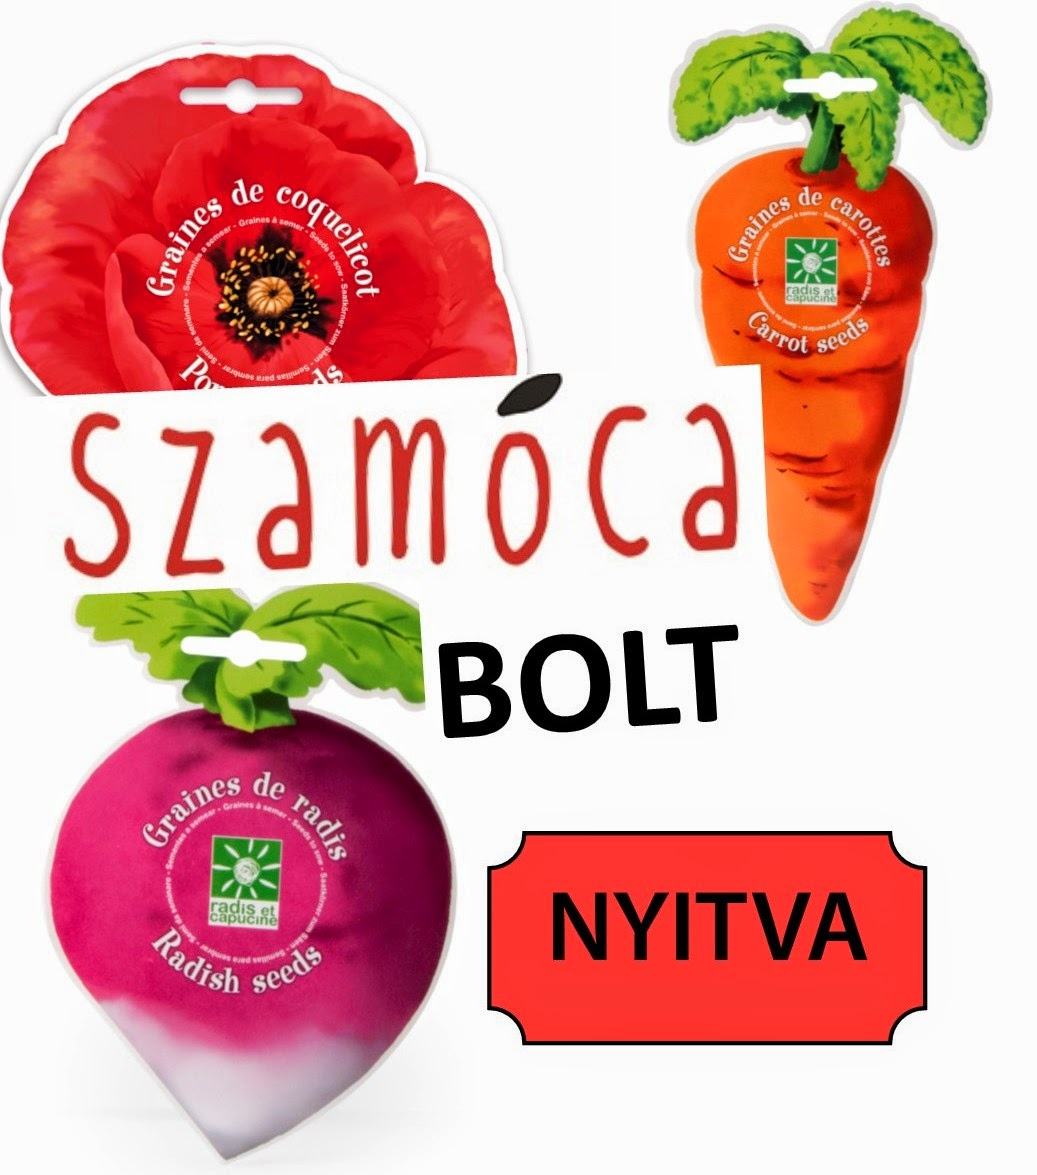 Szamóca bolt